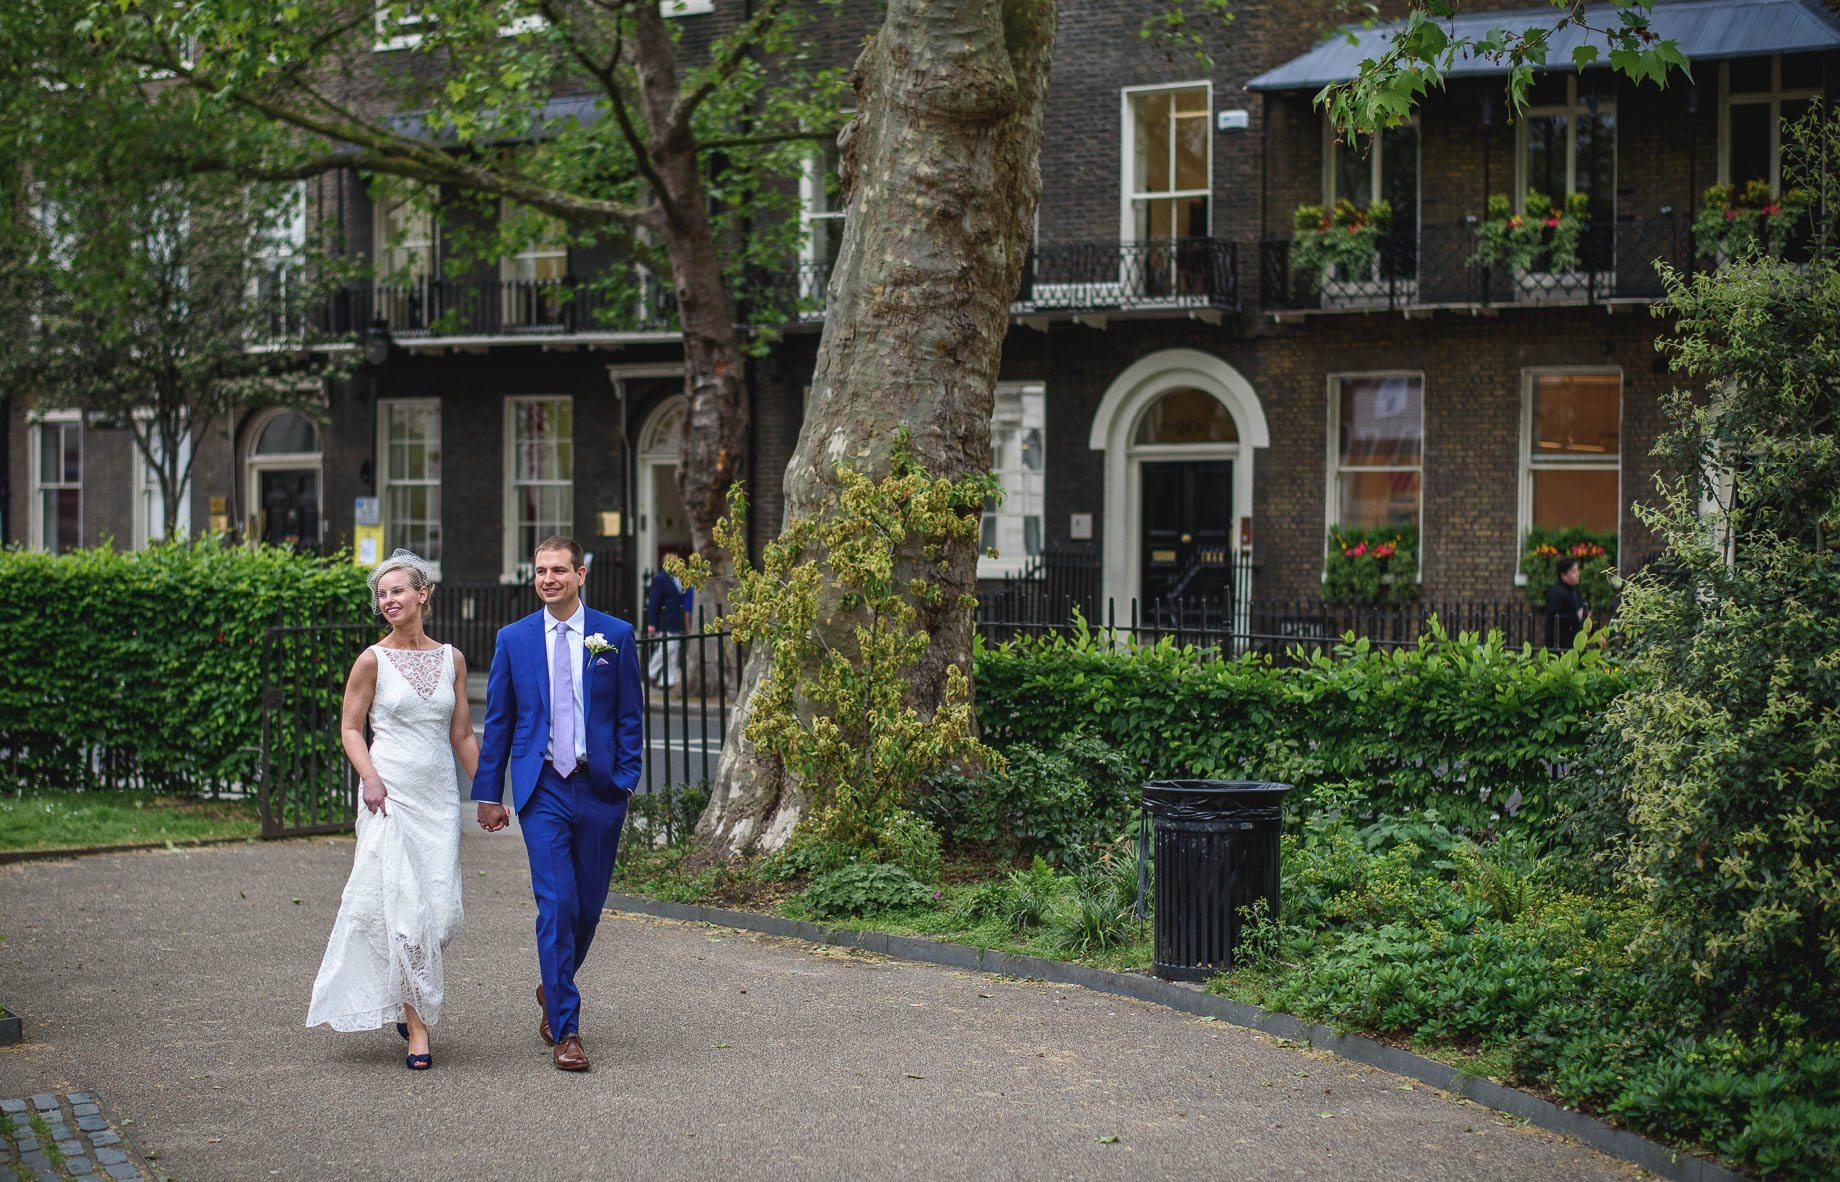 Bllomsbury House wedding photography in London - Katie and Taylor (97 of 156)